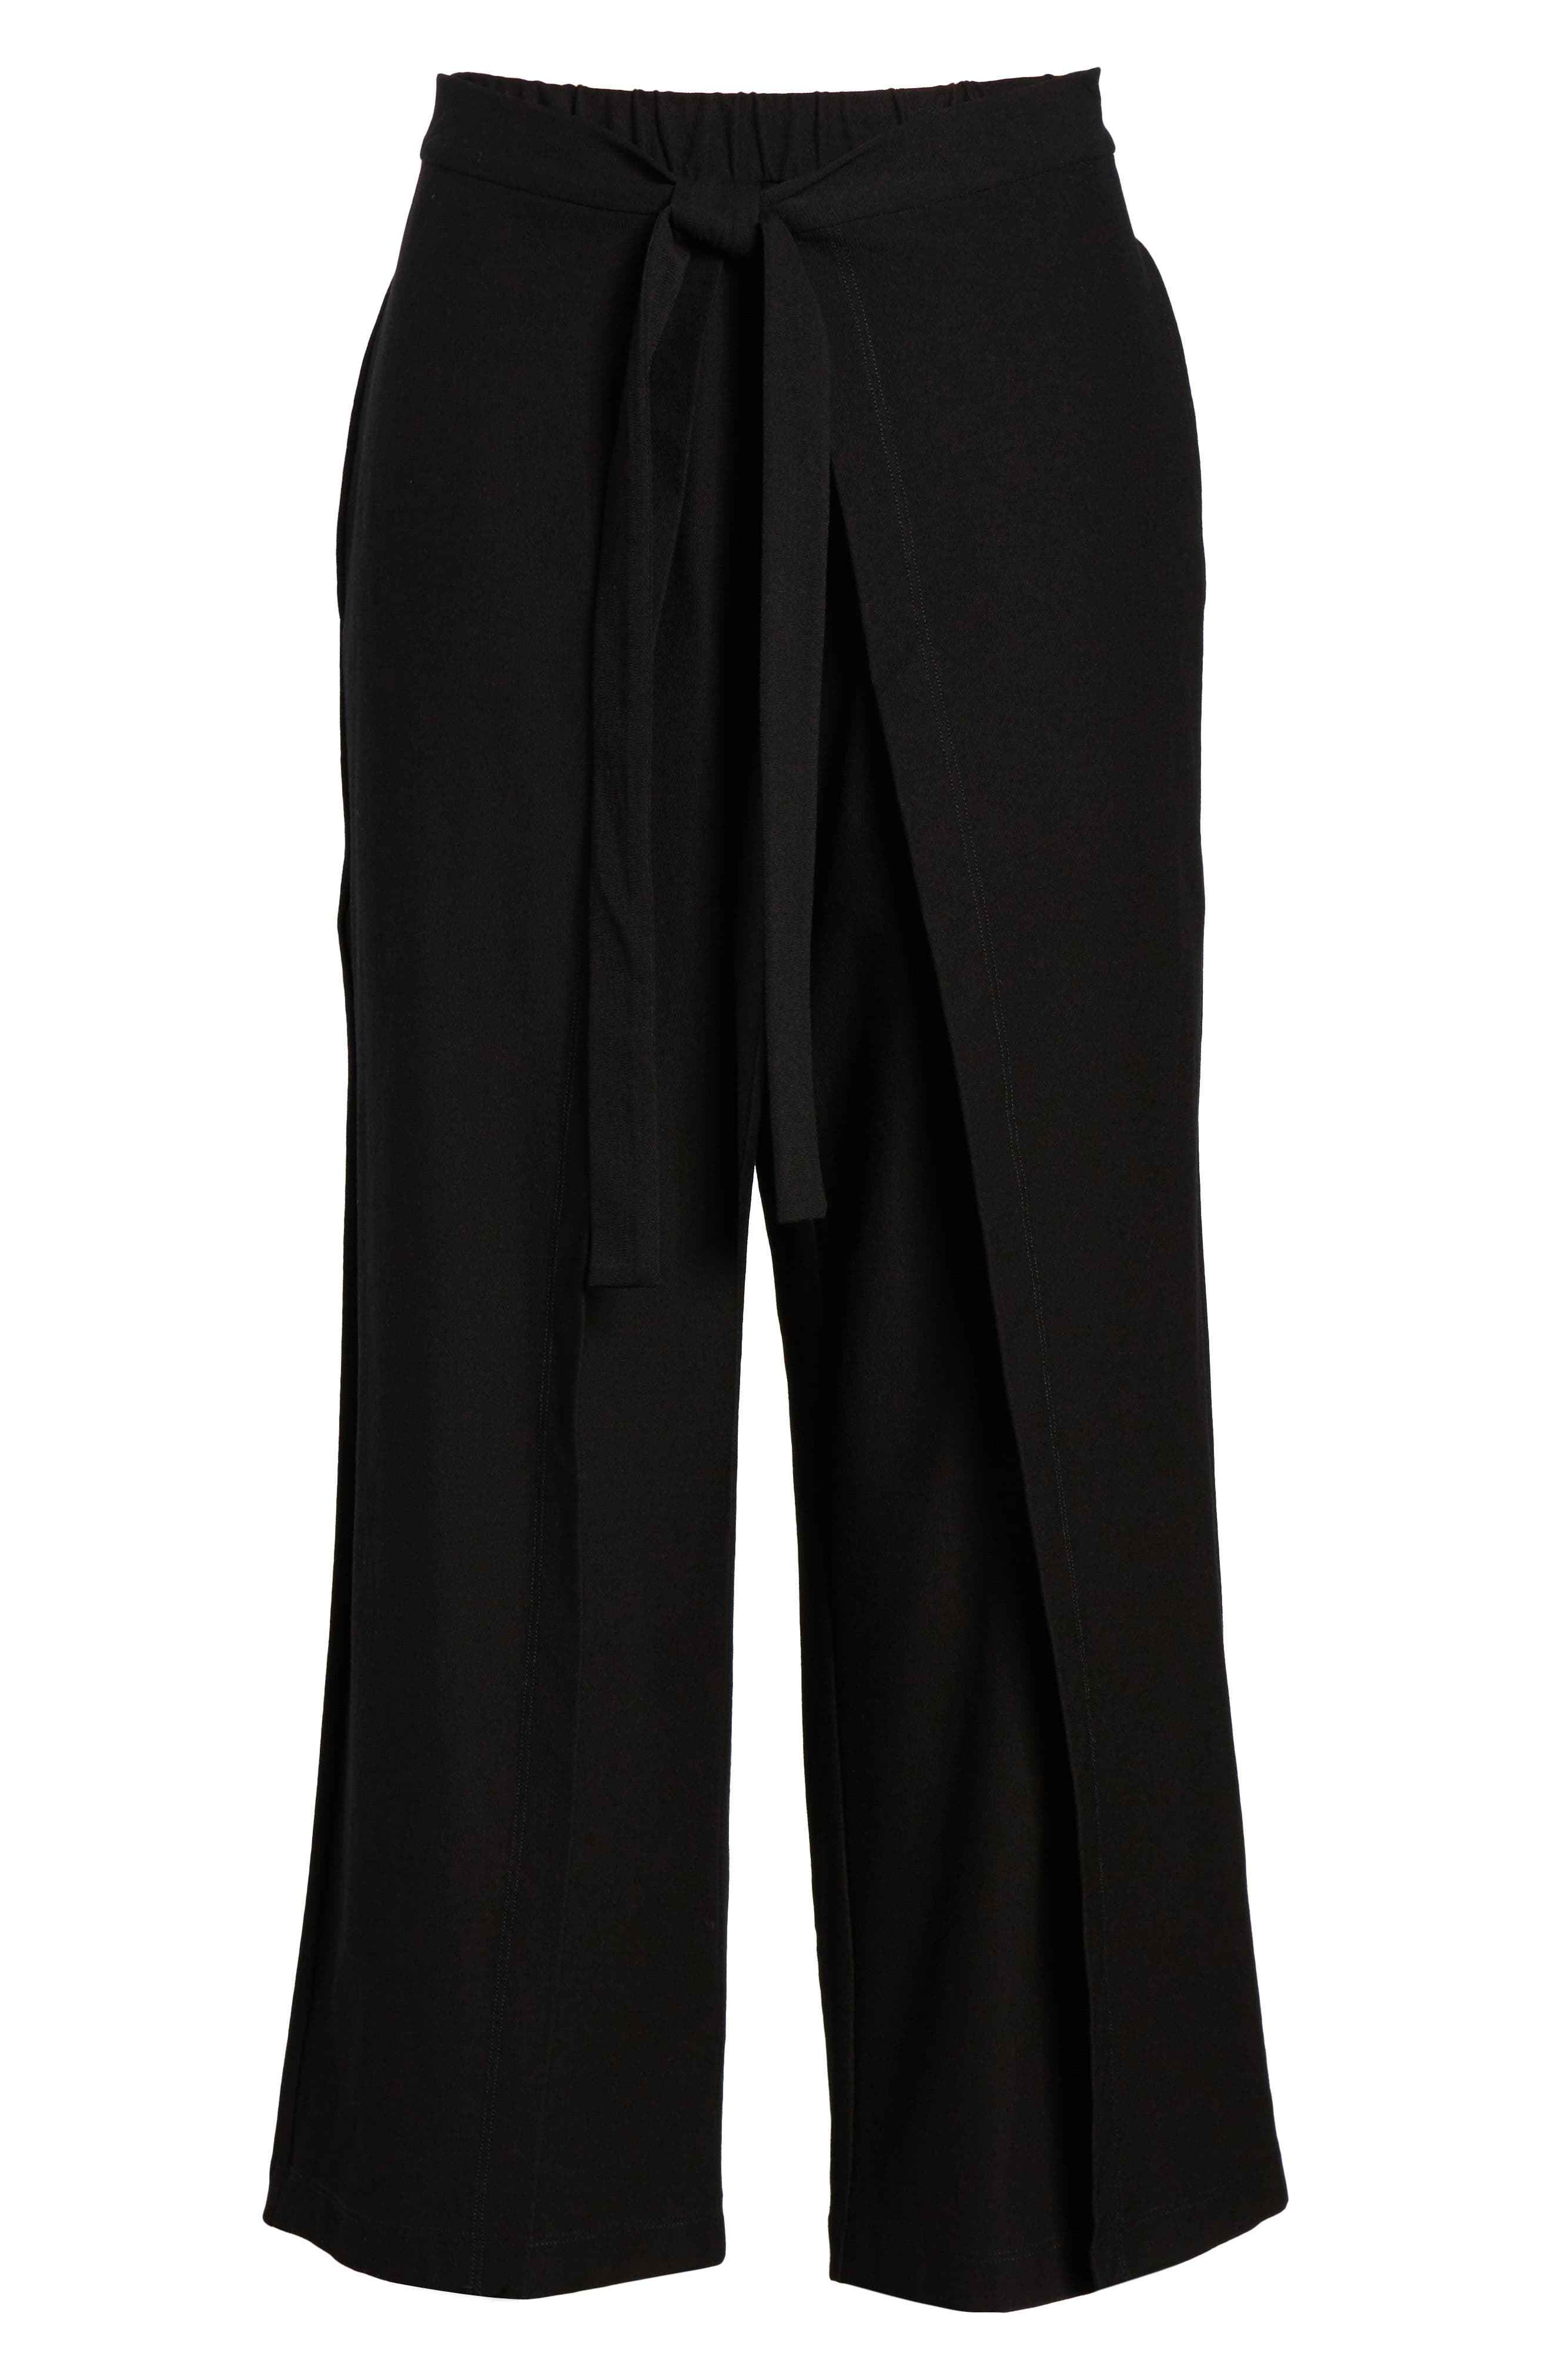 Washable Stretch Crepe Tie-Front Crop Wide Leg Pants,                             Alternate thumbnail 7, color,                             Black